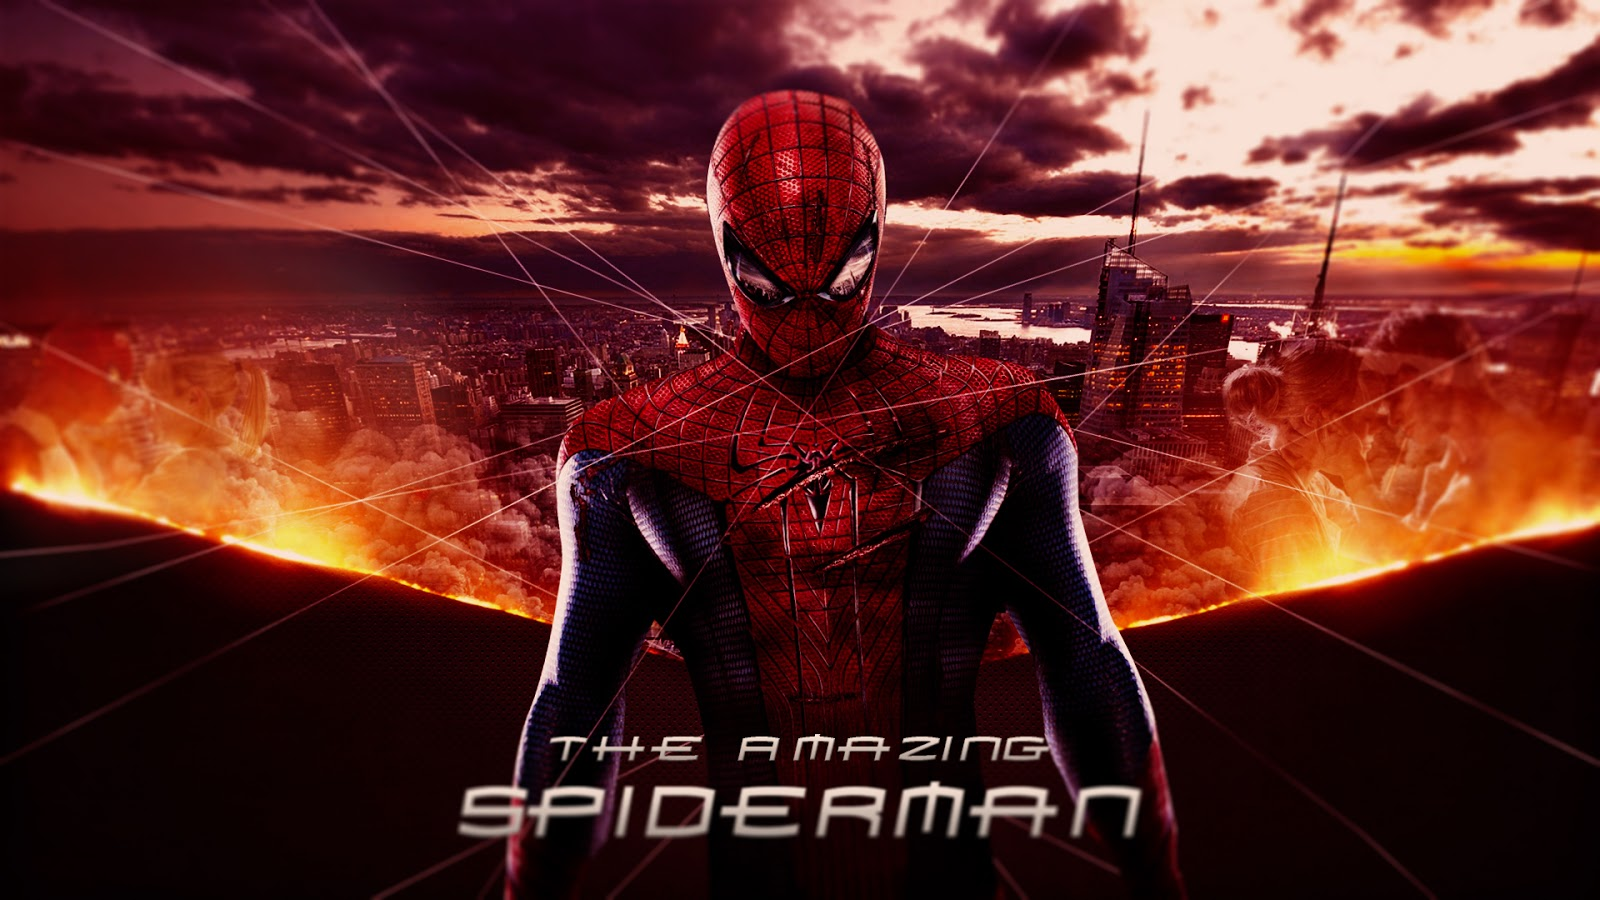 Good Wallpaper Mac Spiderman - spiderman+wallpapers+48  Collection_263553.jpg